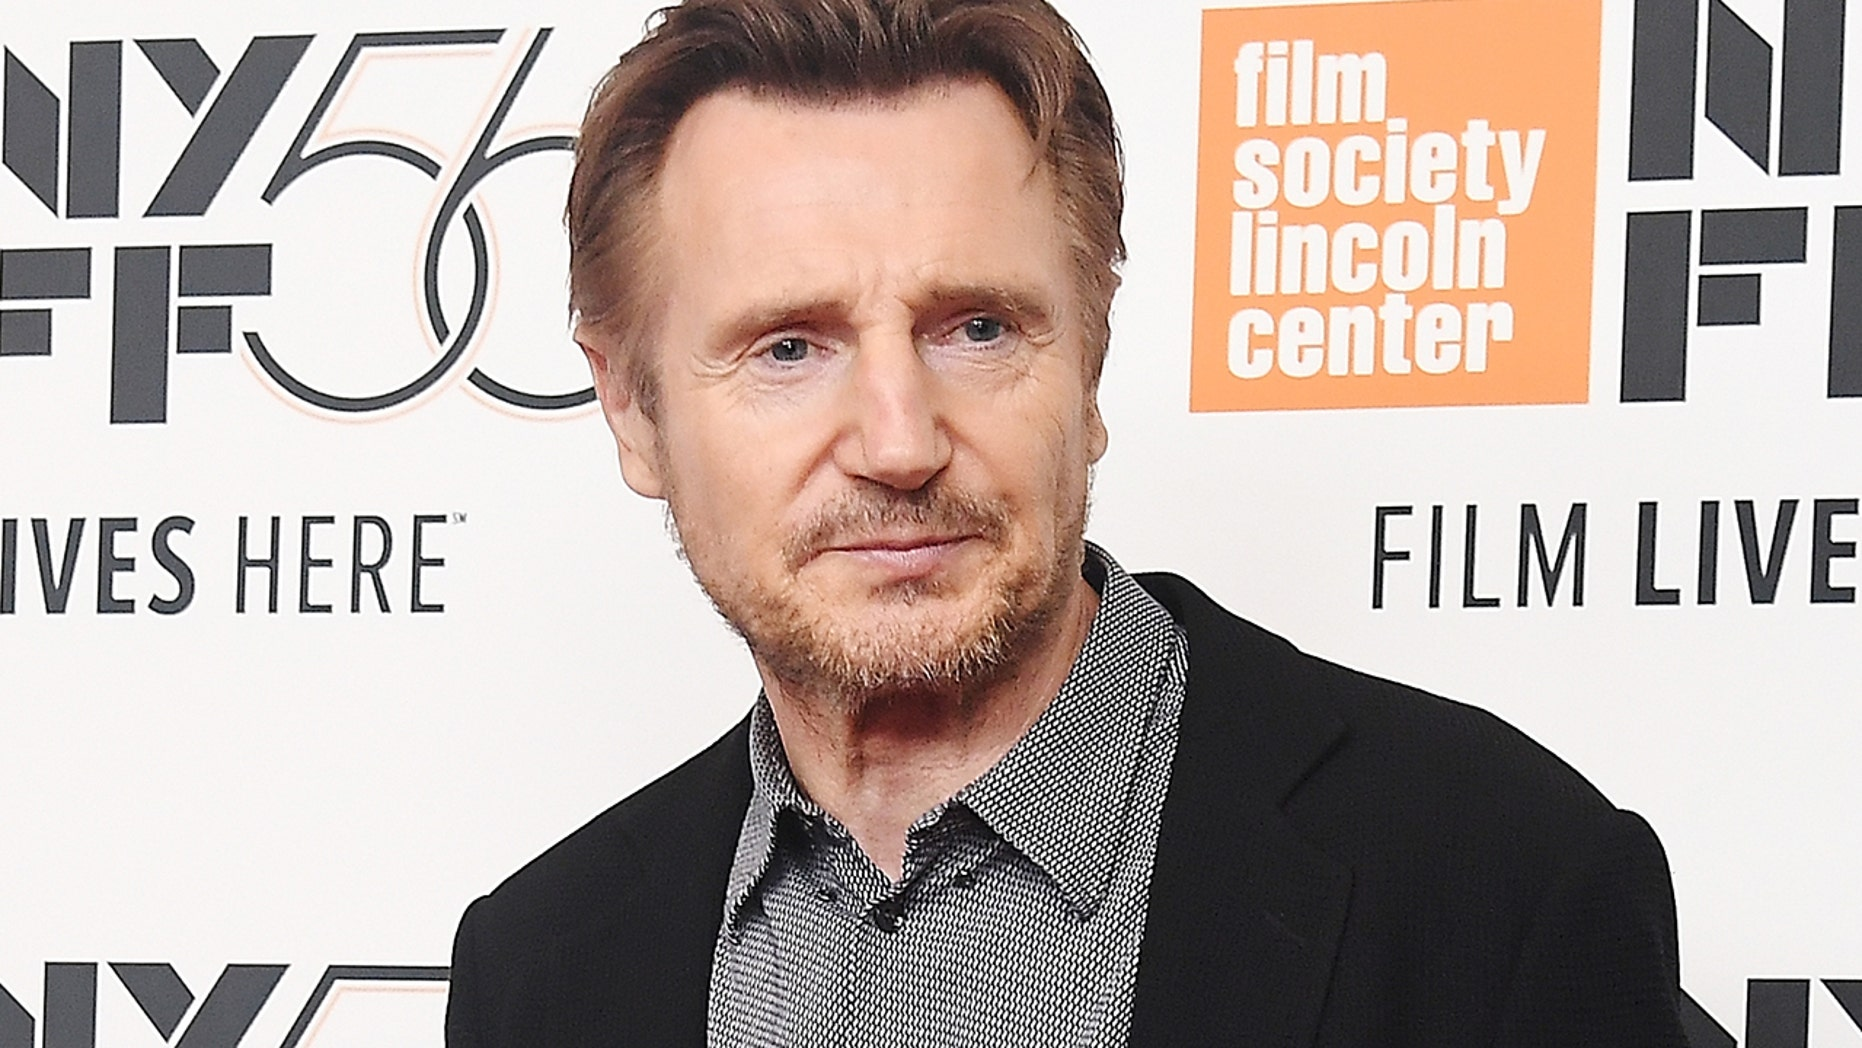 """Liam Neeson attends the screening of """"The Ballad of Buster Scruggs"""" during the 56th New York Film Festival at Alice Tully Hall, Lincoln Center on October 4, 2018 in New York City."""